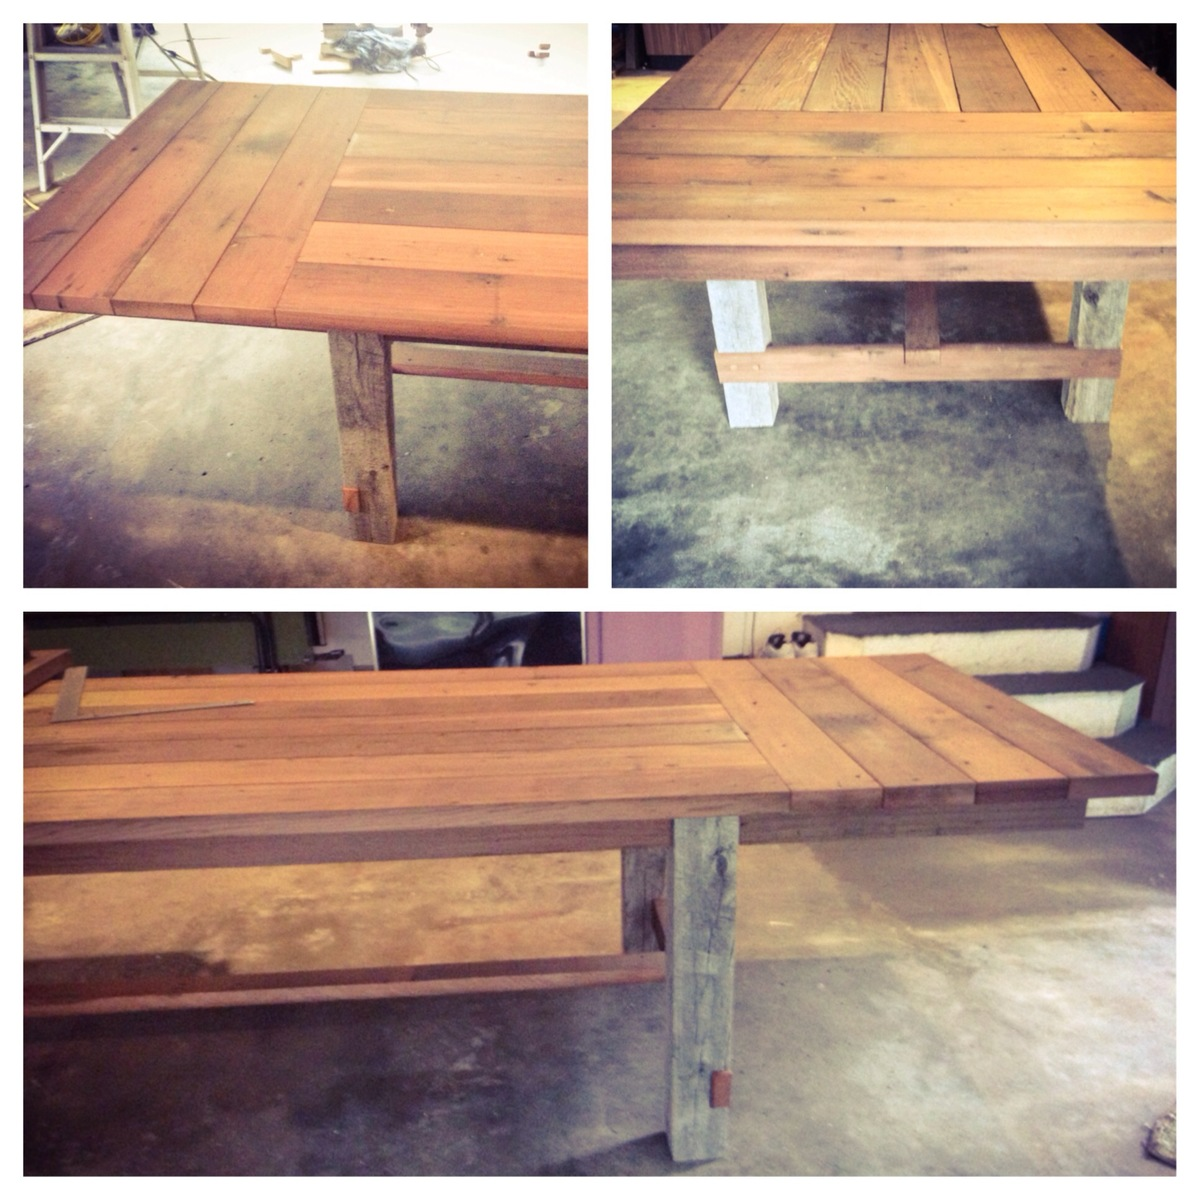 Ana White | 12 Ft Farmhouse Table With Extensions   Reclaimed Wood   DIY  Projects